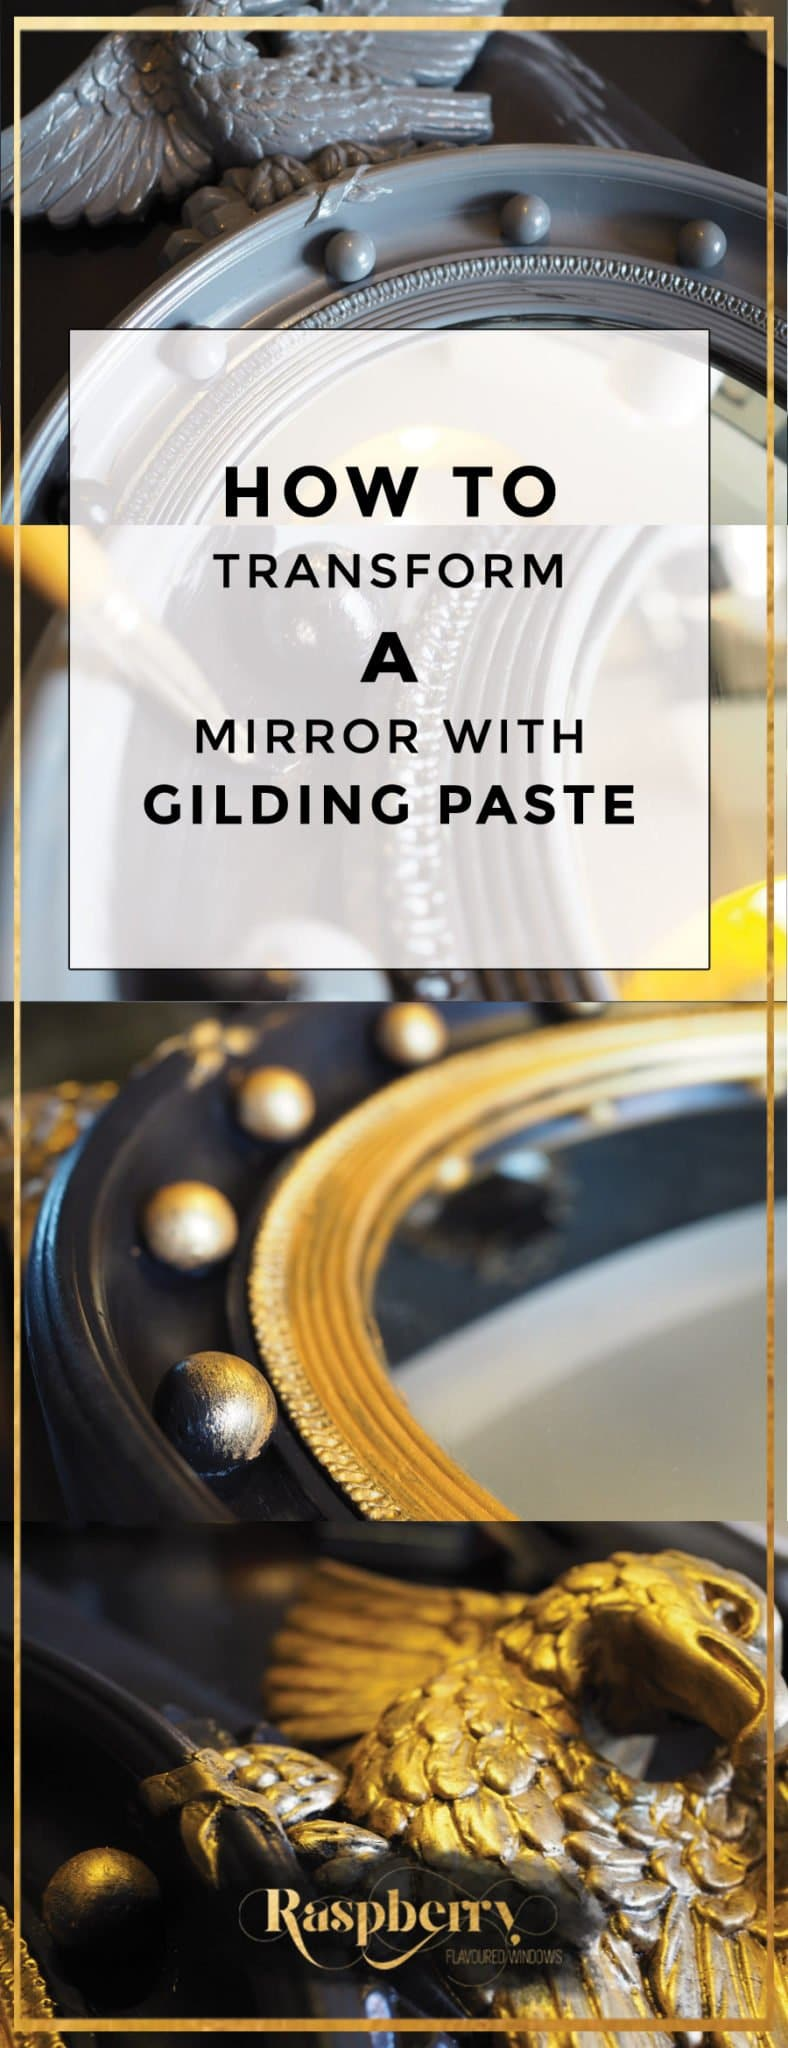 How to Transform a Mirror With Gilding Paste